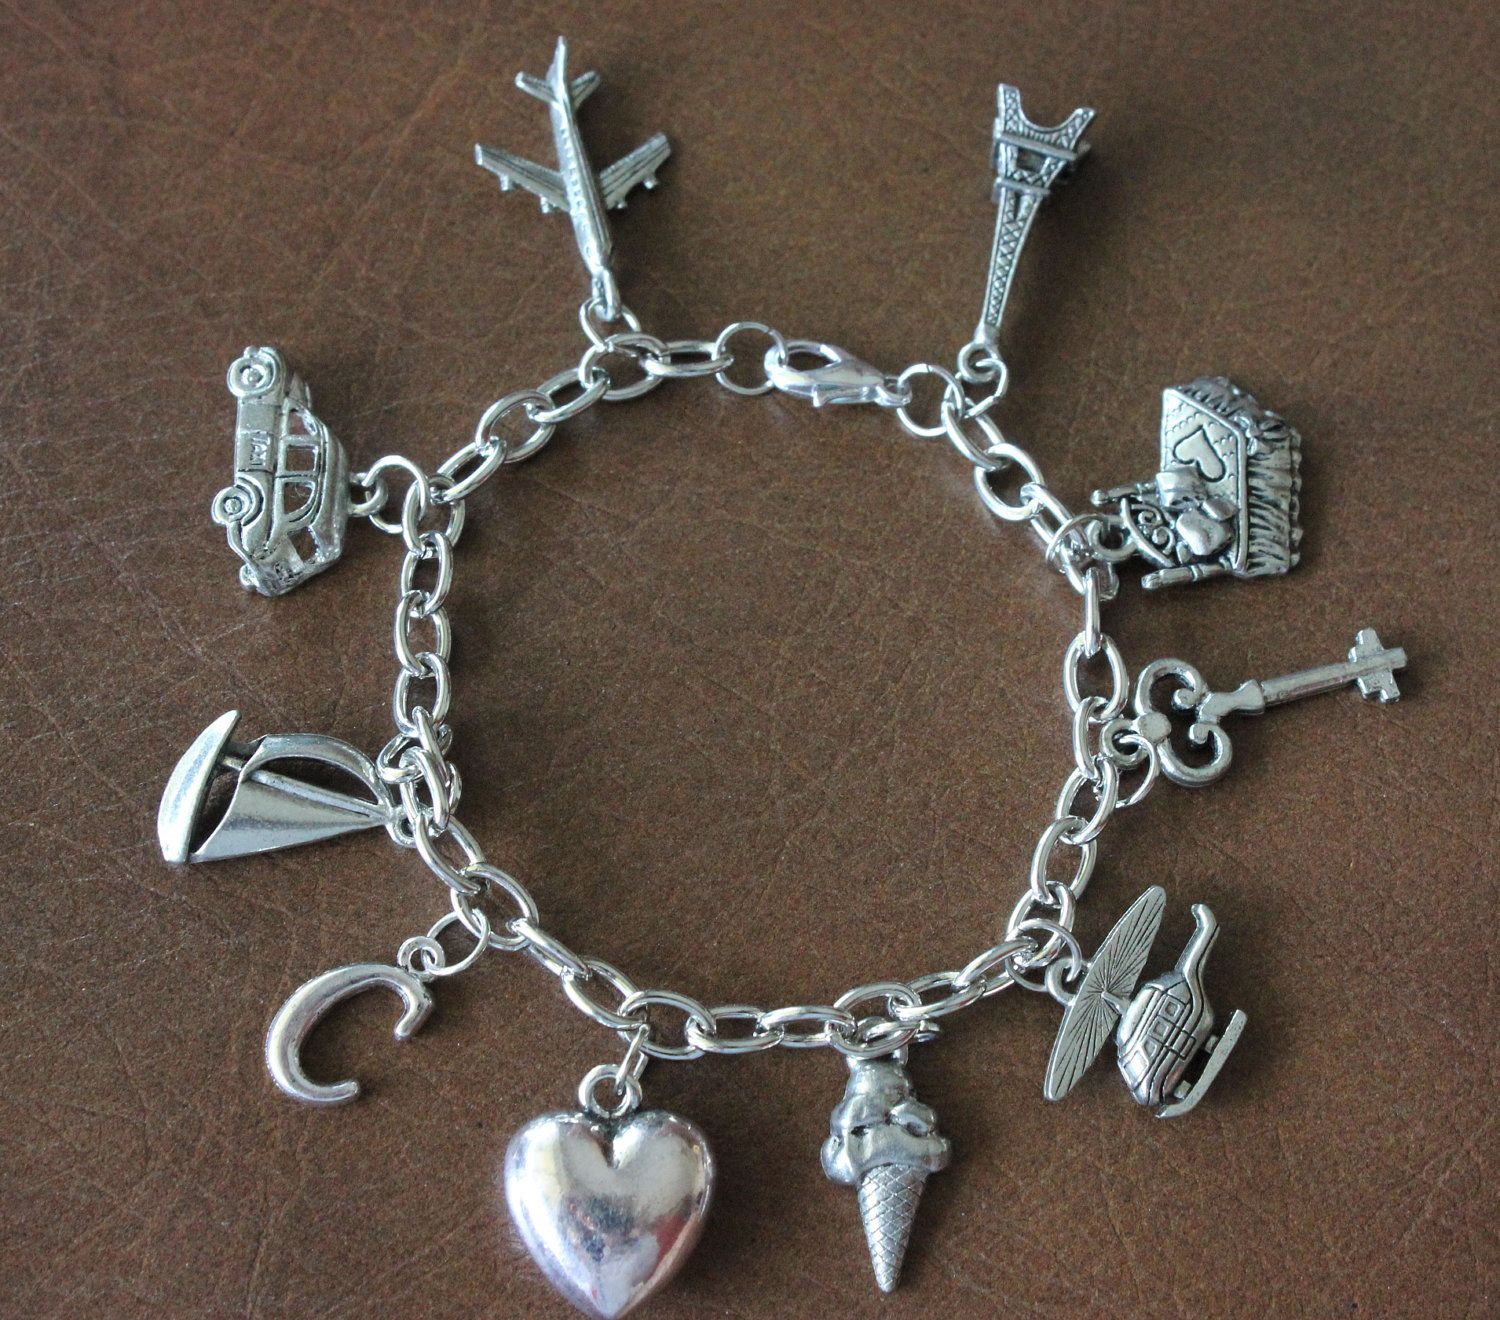 ana s charm bracelet inspired by fifty shades of grey laters  ana s charm bracelet inspired by fifty shades of grey laters baby 49 00